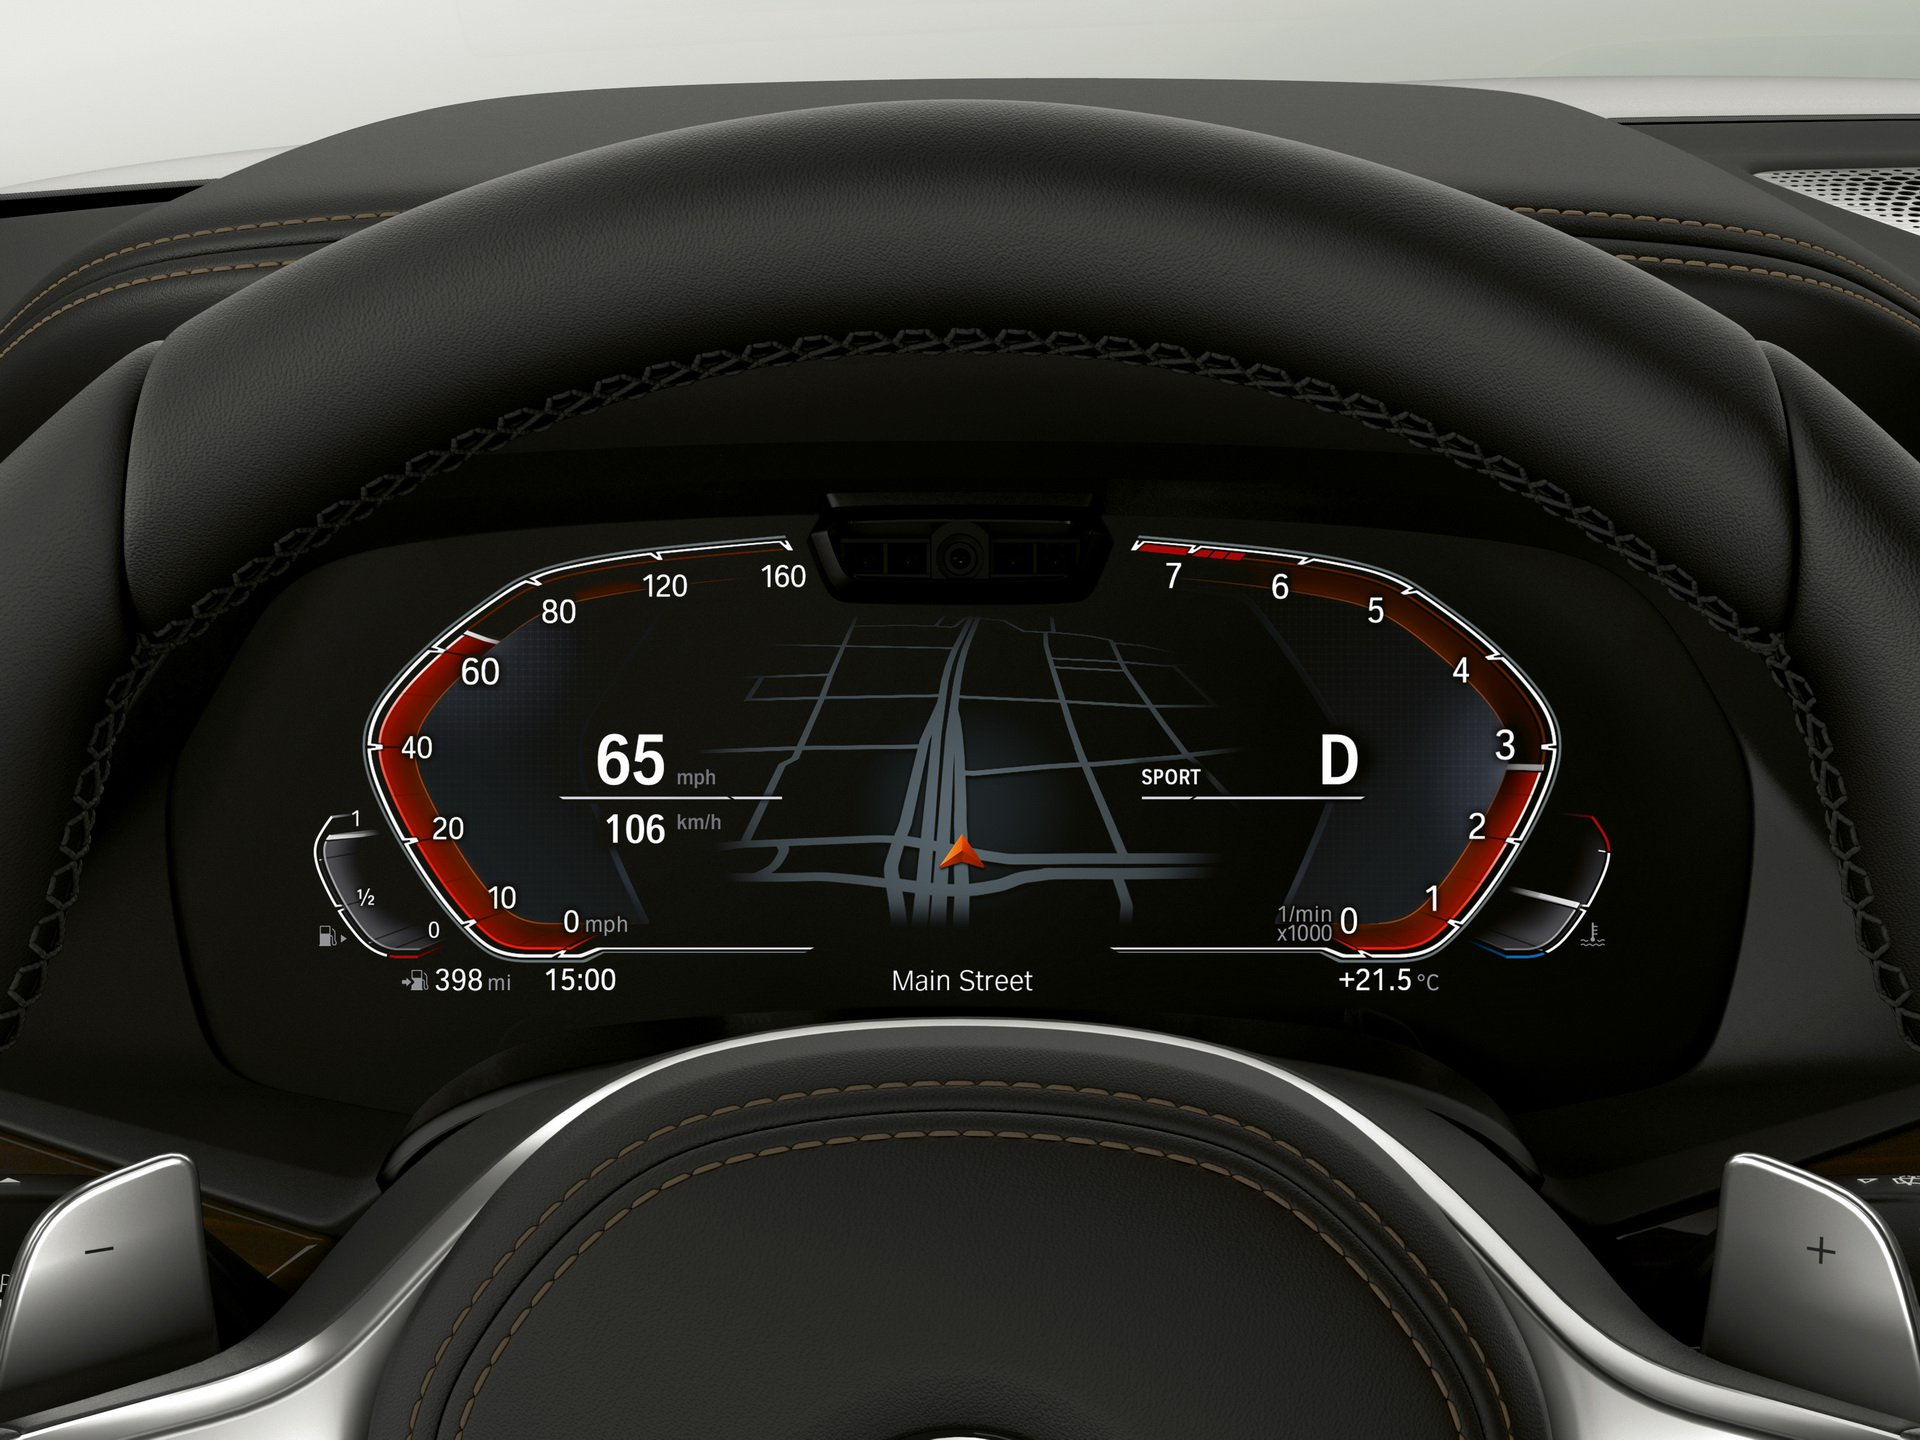 bmw-digital-cockpit-5-1.jpg